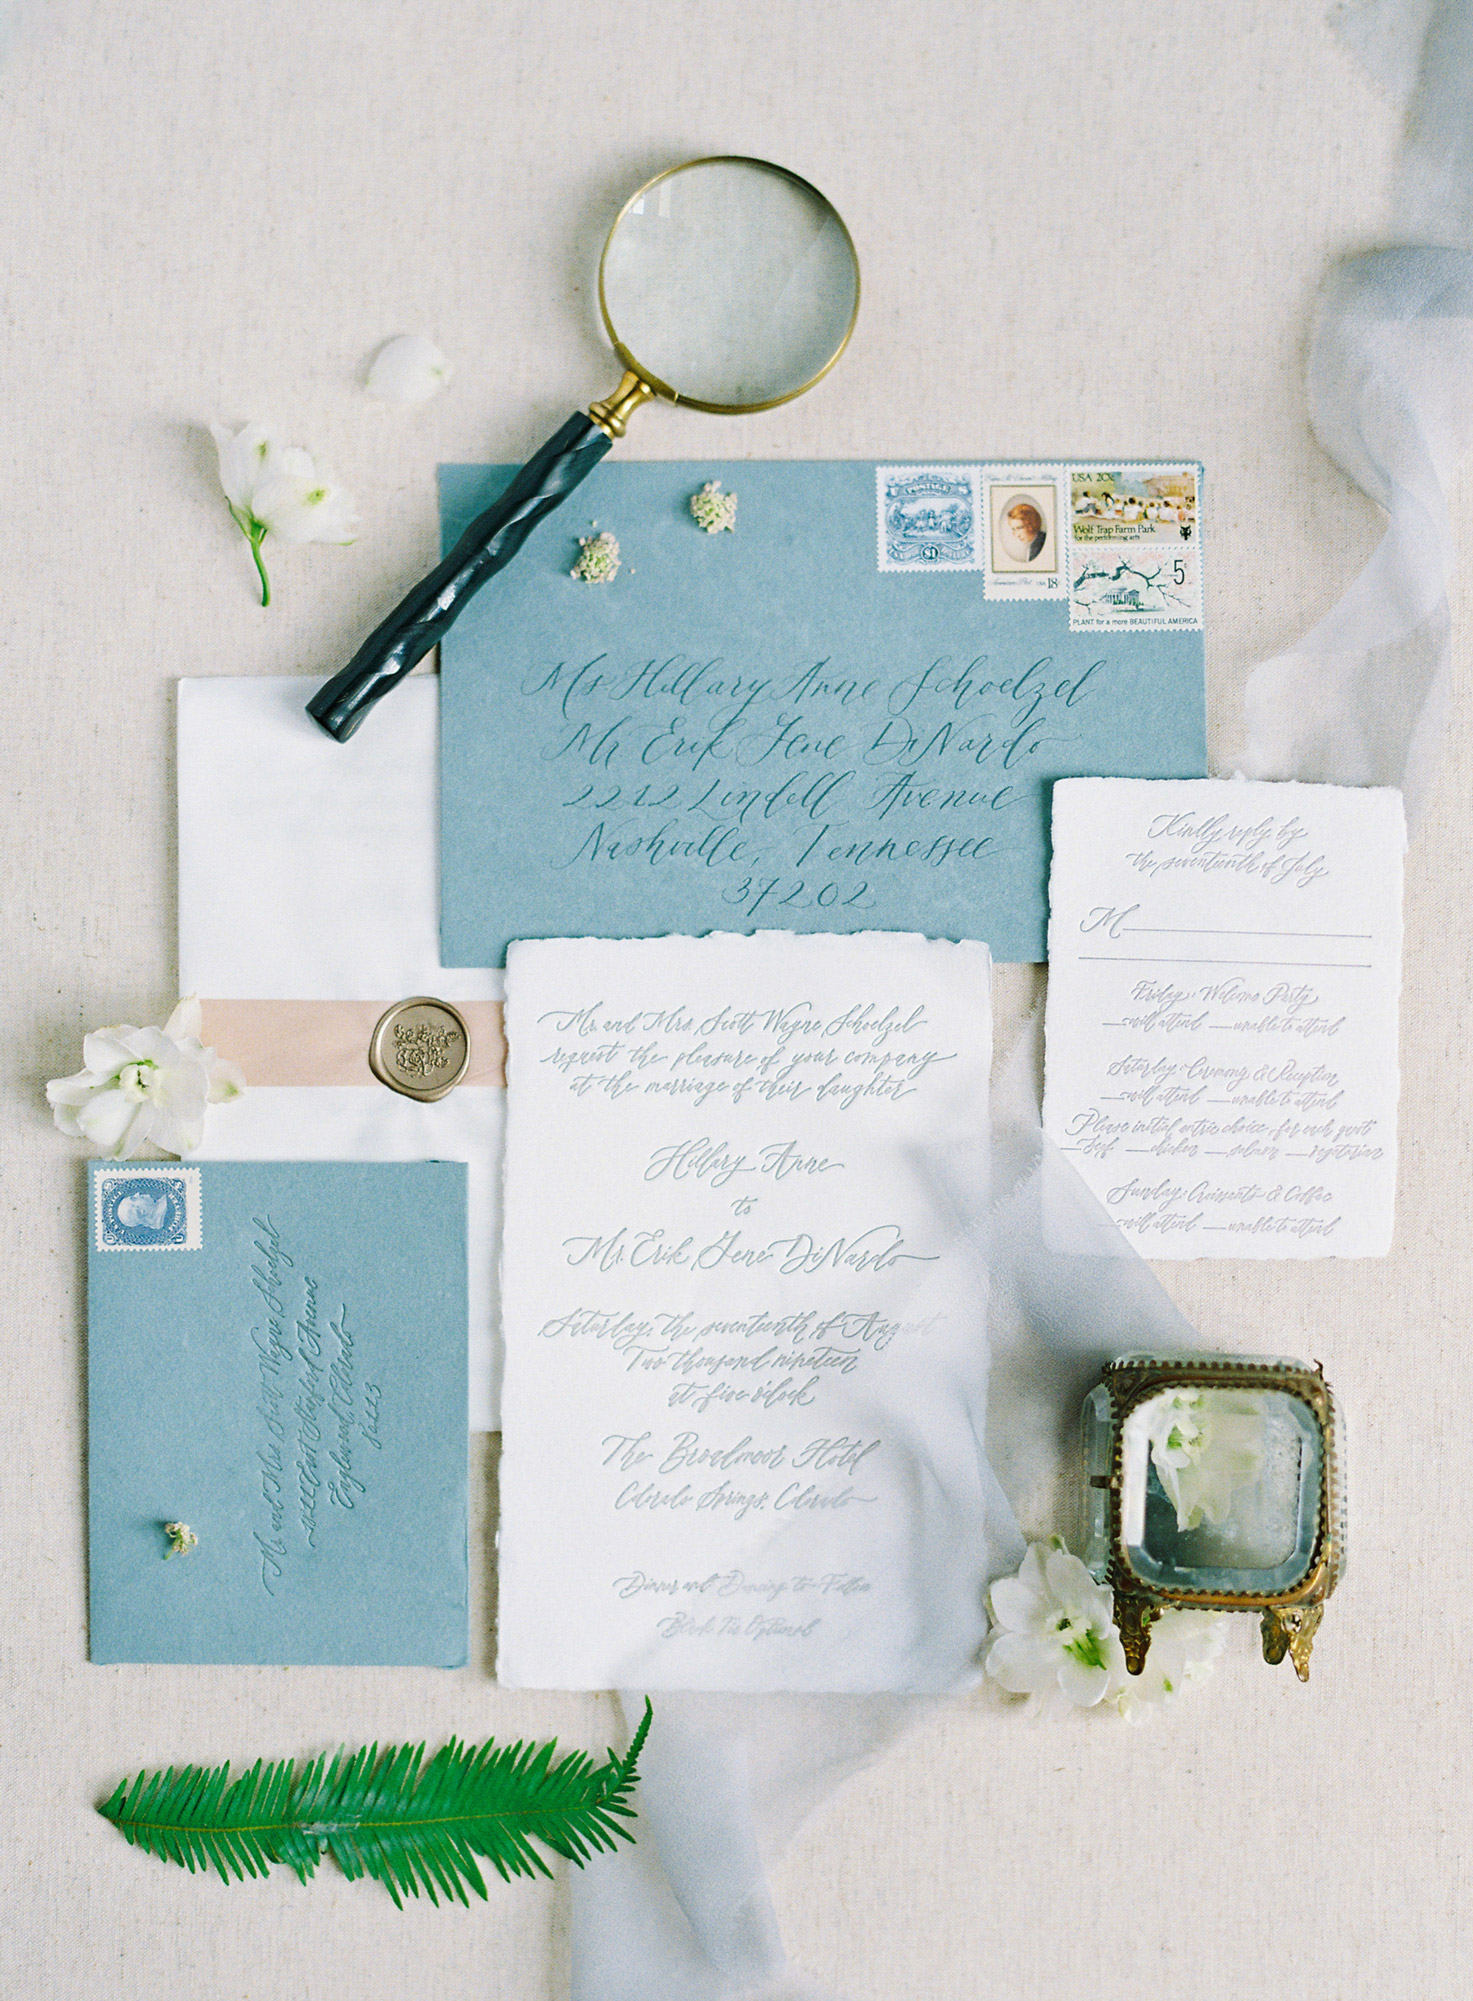 Hillary and Erik's wedding invitation package